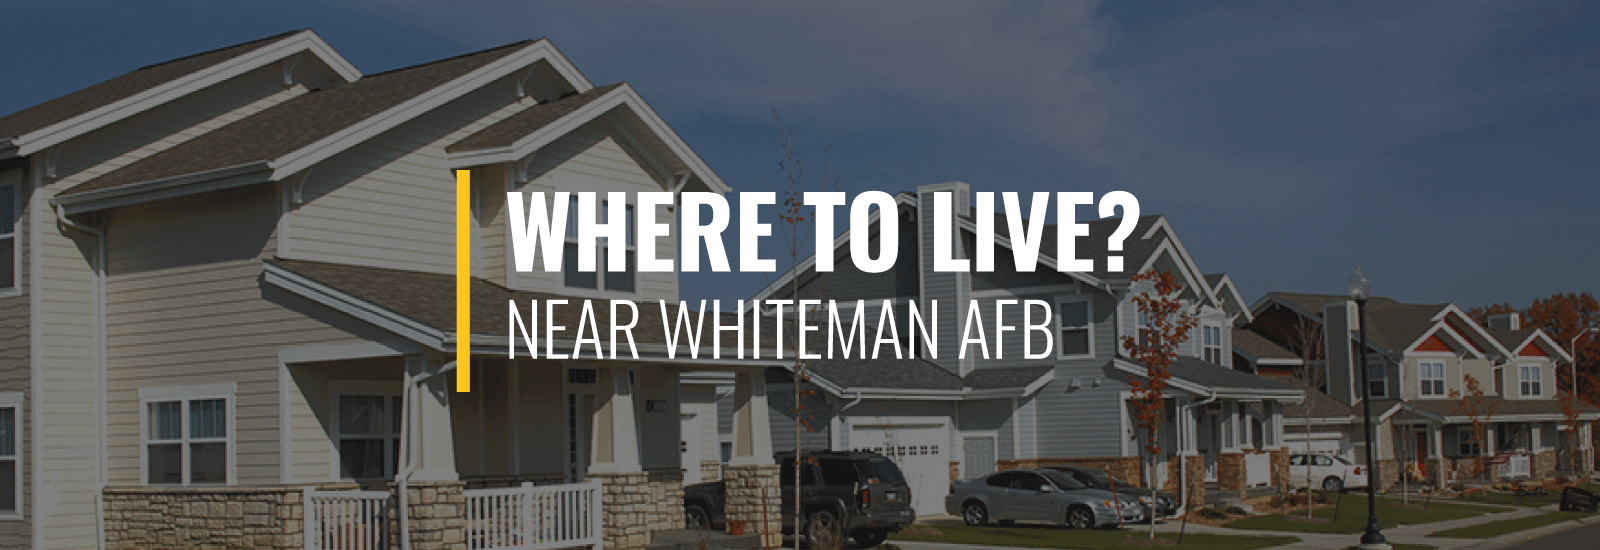 Where Should I Live Near Whiteman Air Force Base?